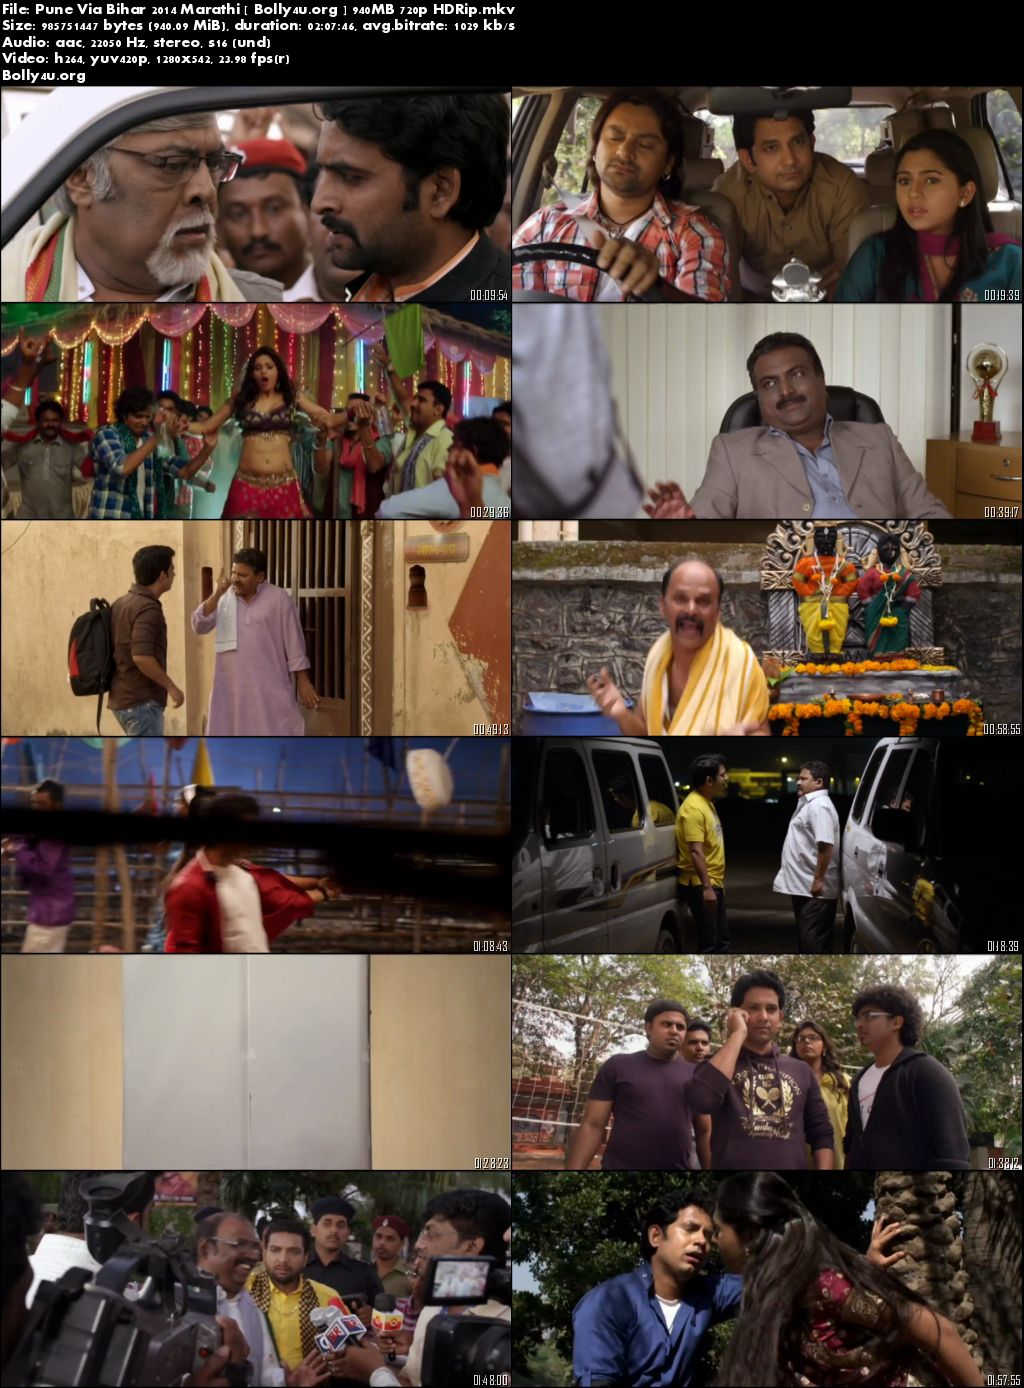 Pune Via Bihar 2014 HDRip 900Mb Marathi Movie 720p